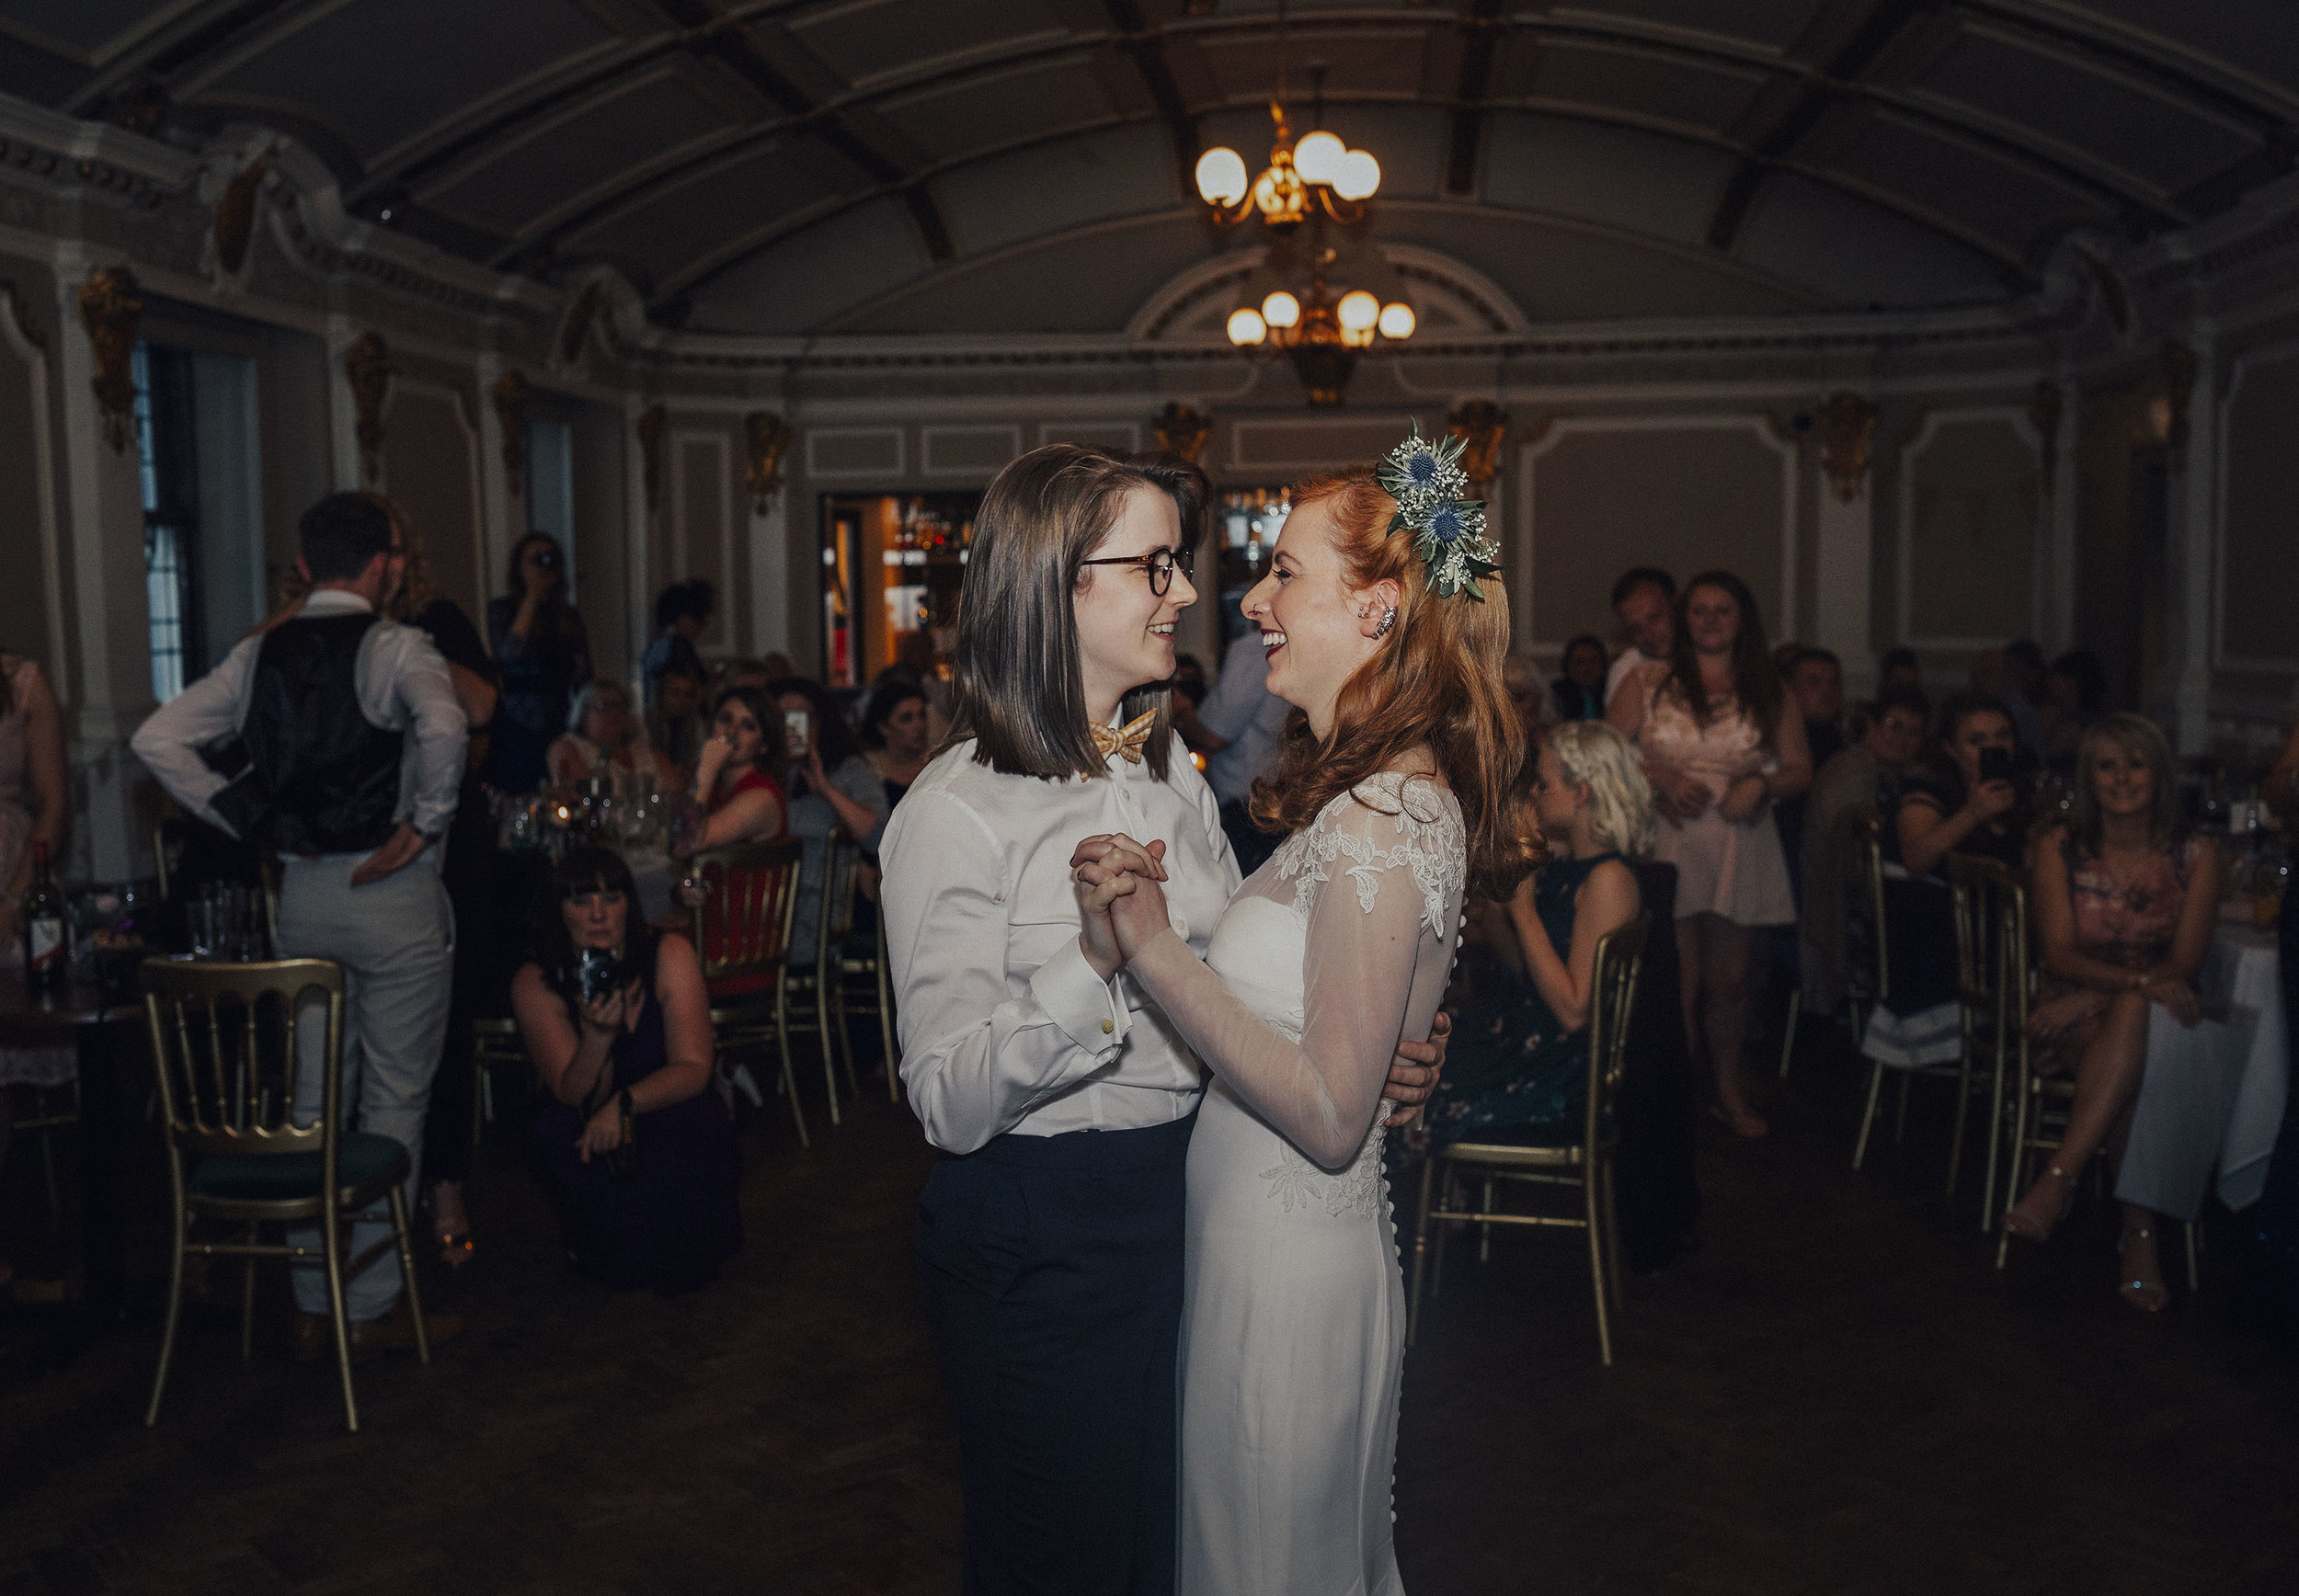 SAME_SEX_WEDDING_PHOTOGRAPHER_SLOANS_GLASGOW_PJ_PHILLIPS_PHOTOGRAPHY_107.jpg